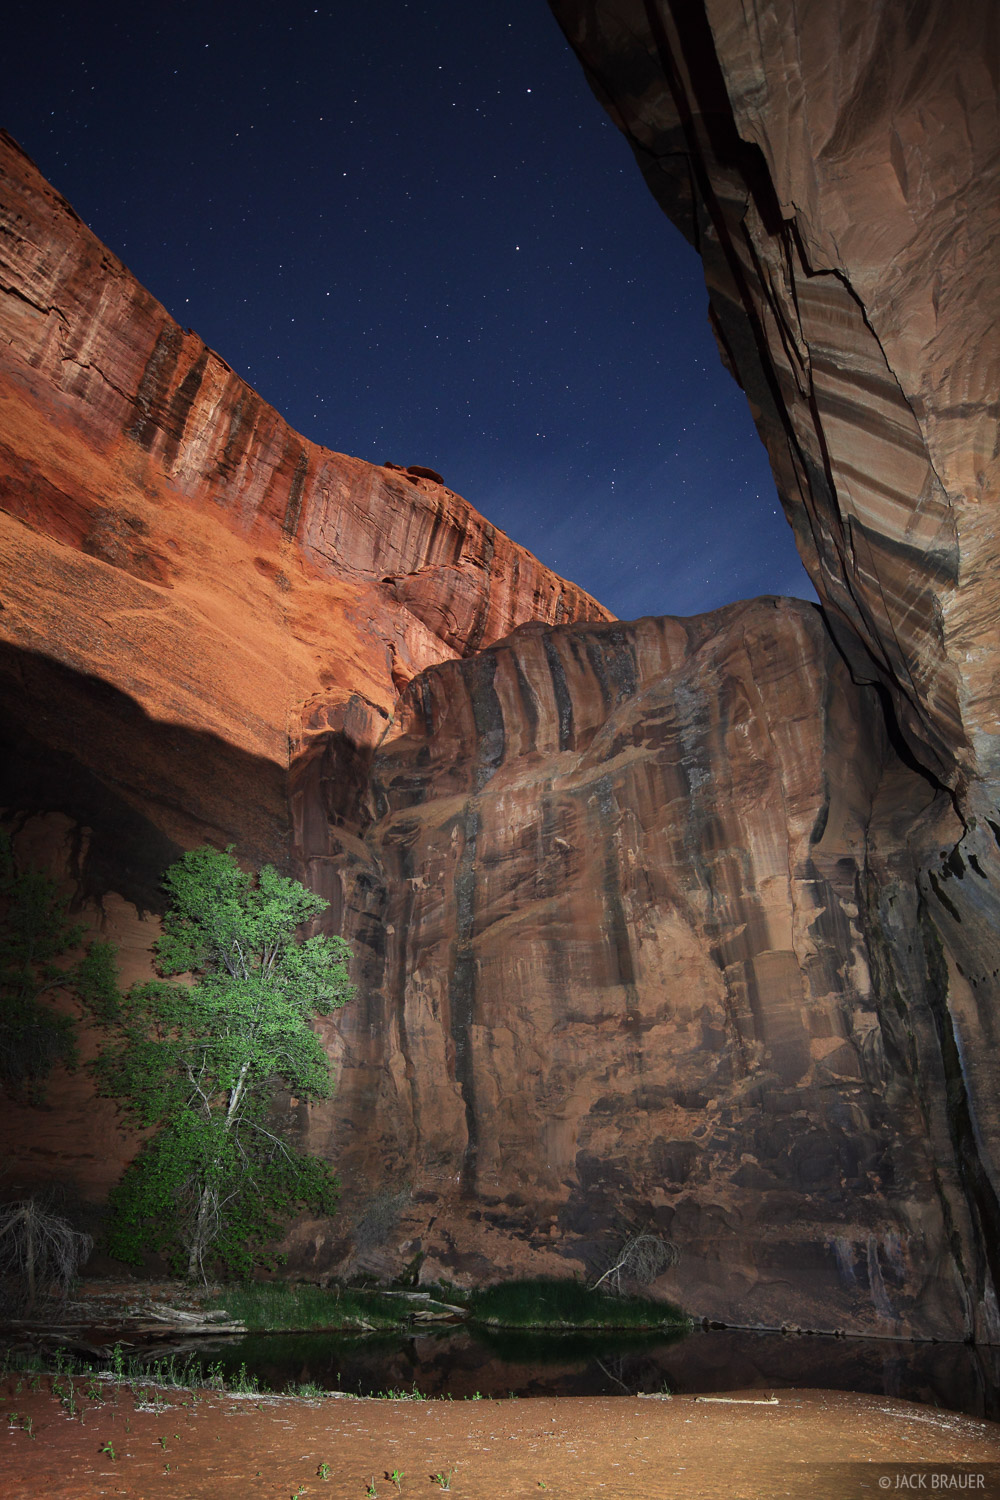 moonlight, flashlight painting, Escalante, Utah, Glen Canyon National Recreation Area, photo